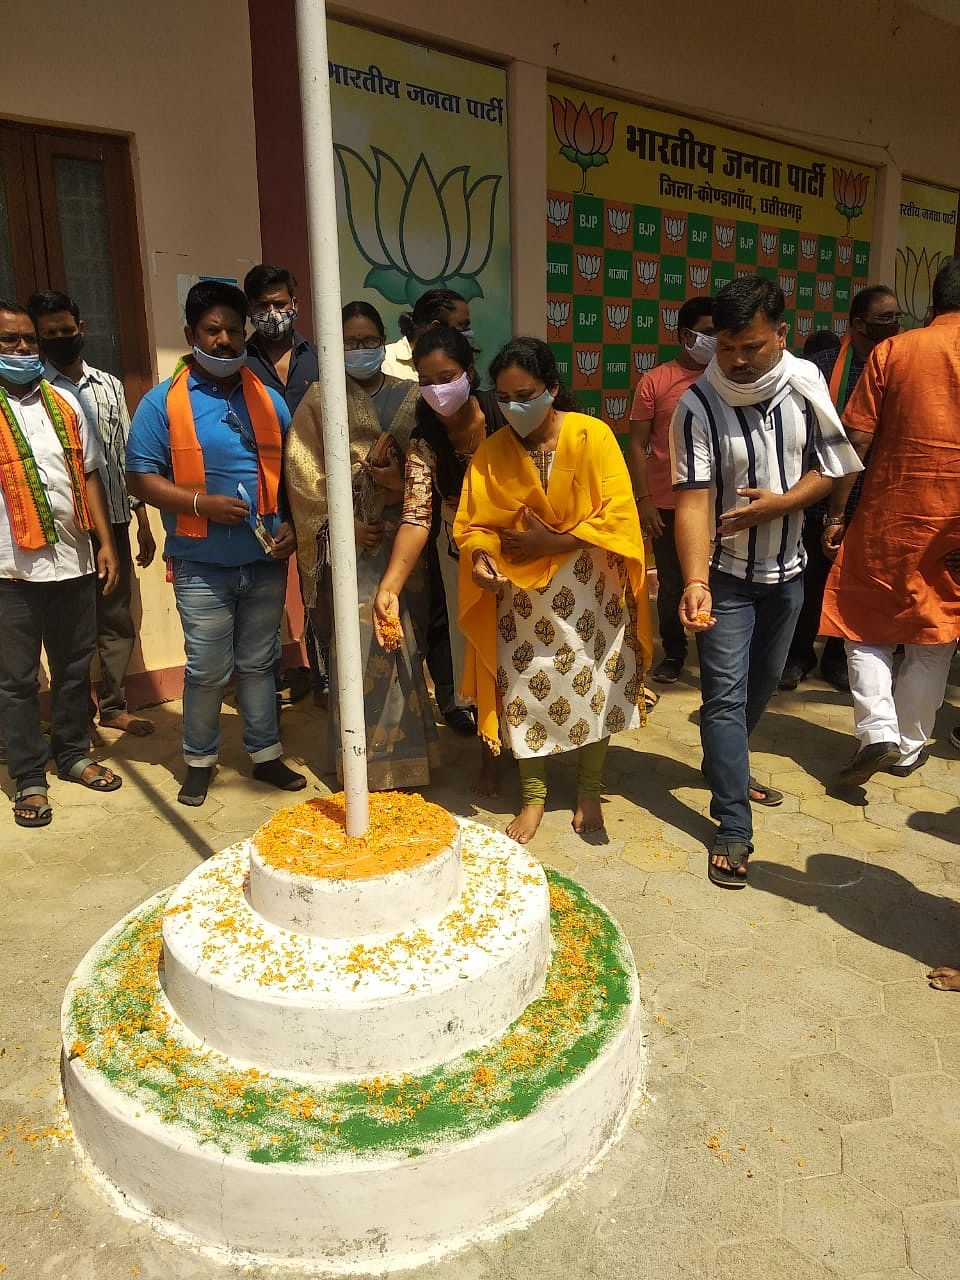 kondagaon-booth-level-programs-organized-on-the-foundation-day-of-bharatiya-janata-party